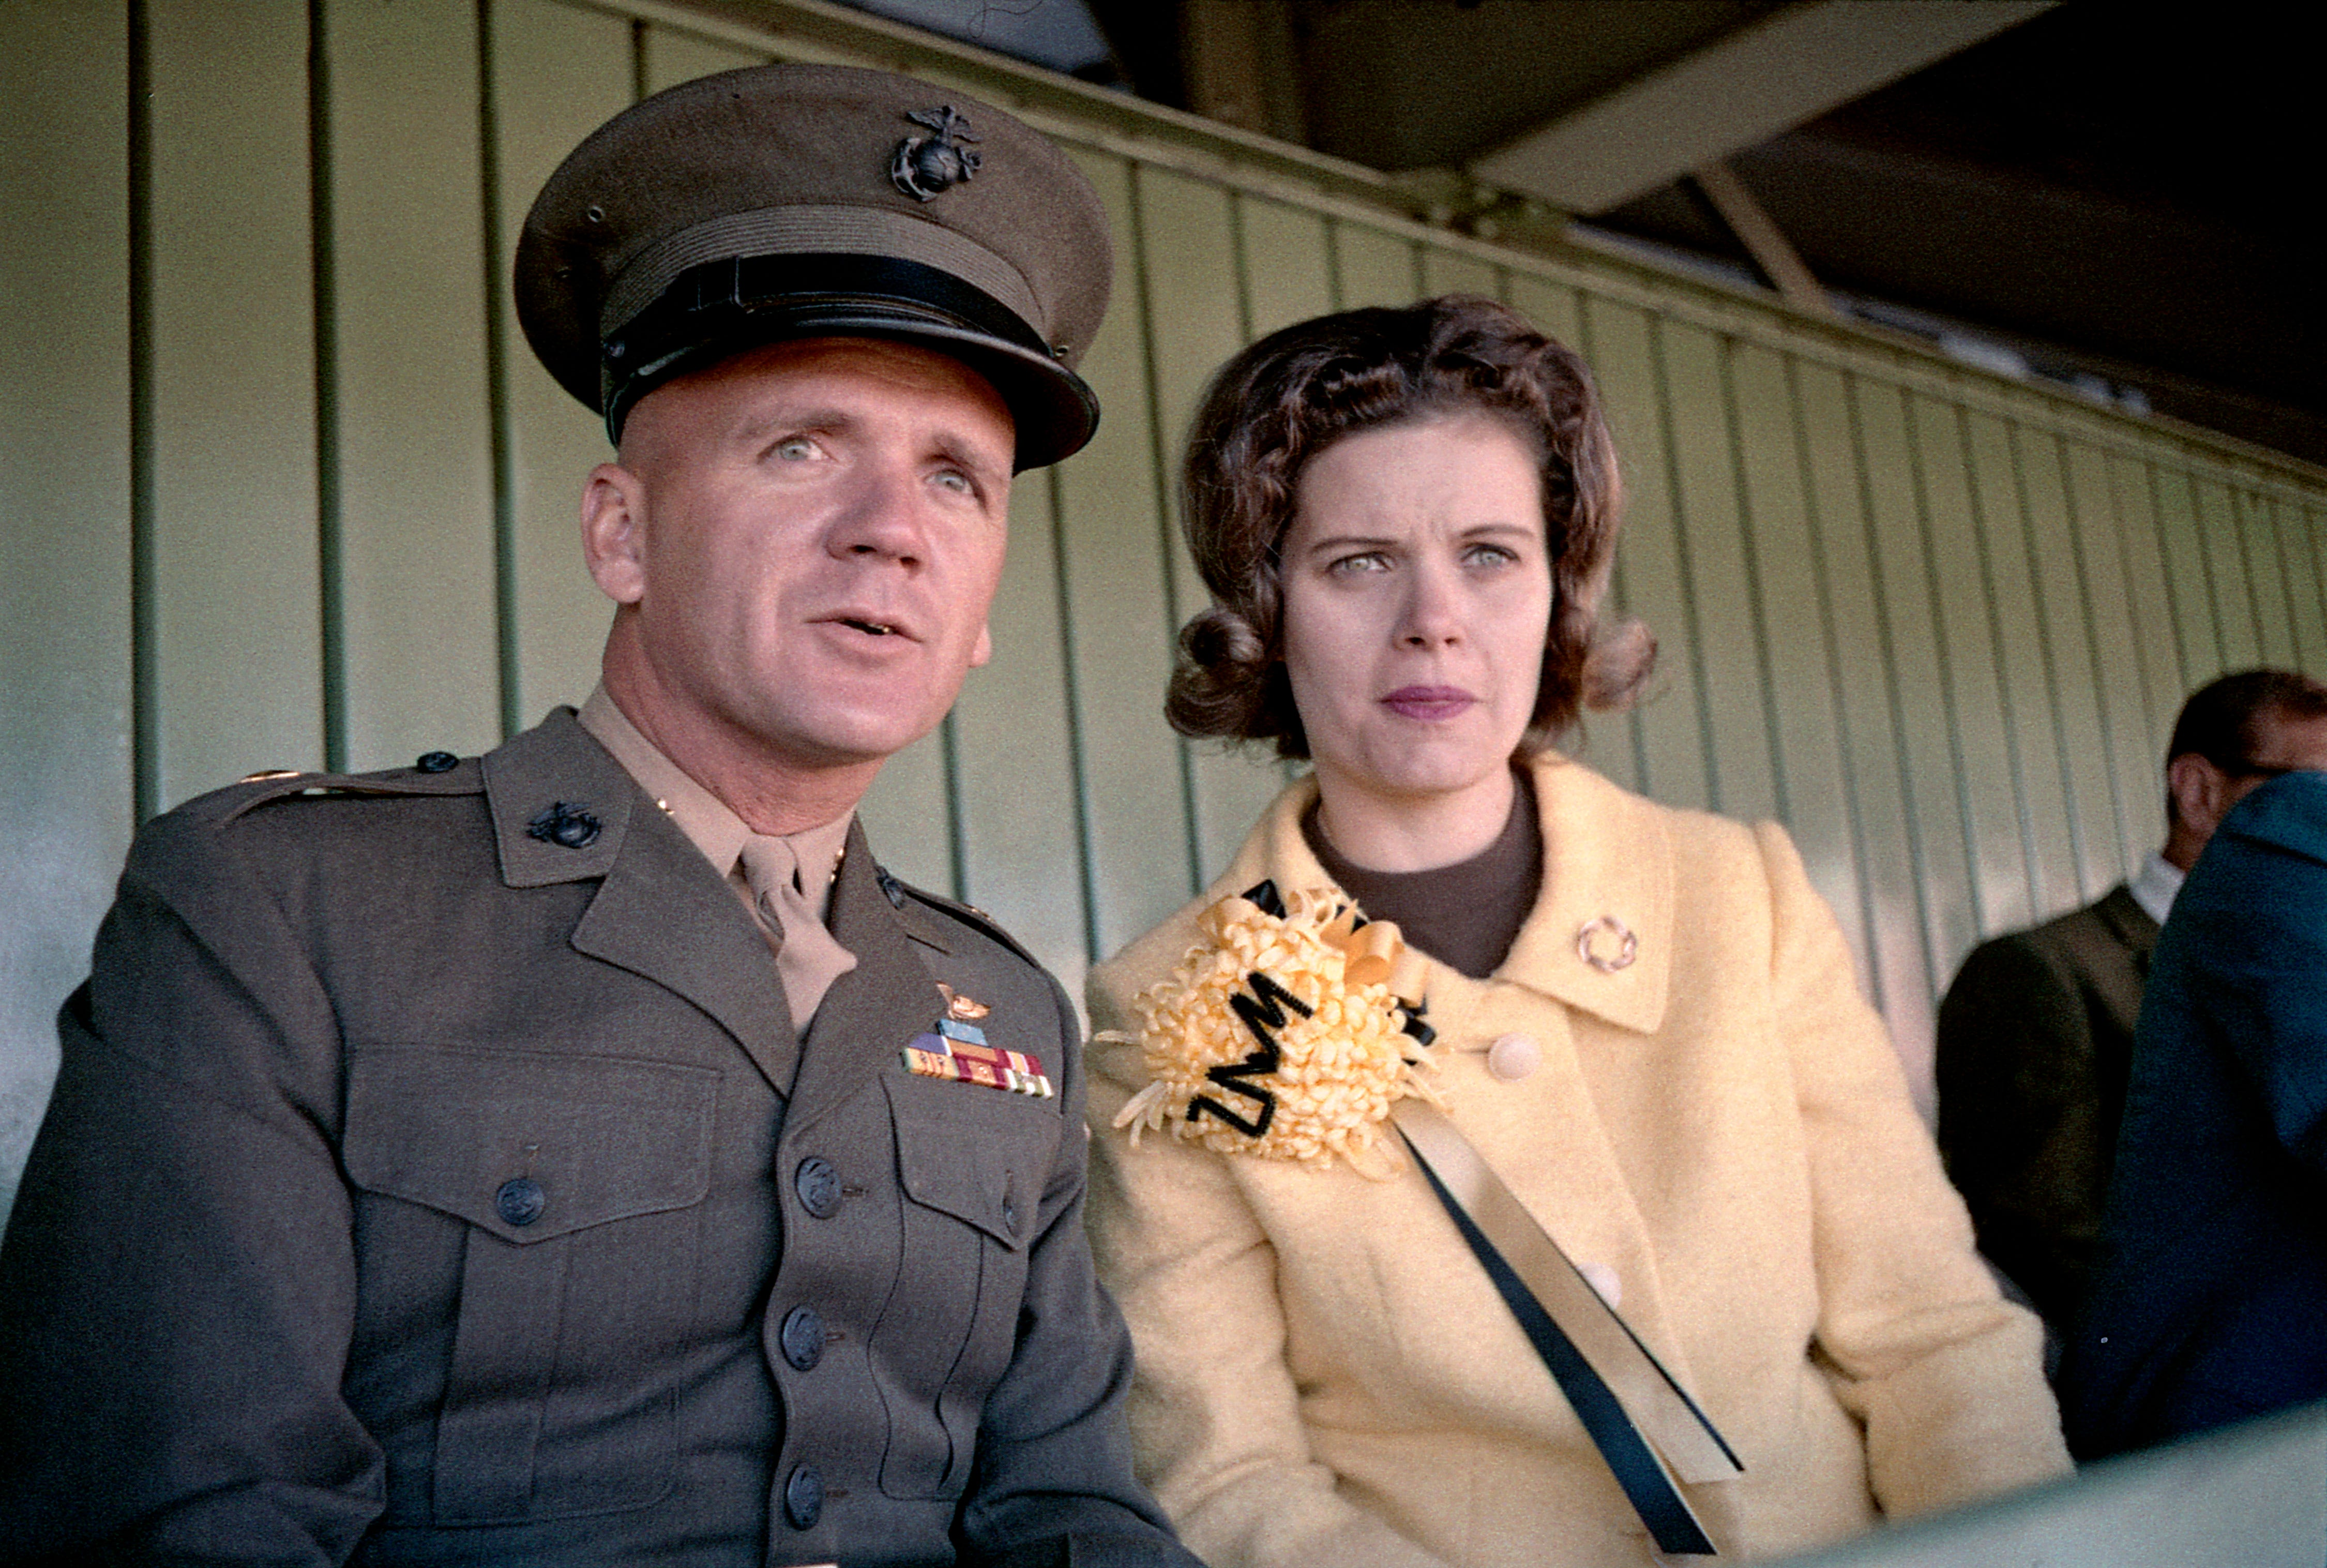 Medal of Honor winner Maj. Robert J. Modrzejewski and his wife, Diane, take in the University of Wisconsin-Milwaukee football game at Marquette Stadium on Oct. 19, 1968. Modrzejewski, who was born on the south side of Milwaukee and went to Pulaski High School, graduated from UWM in 1957.